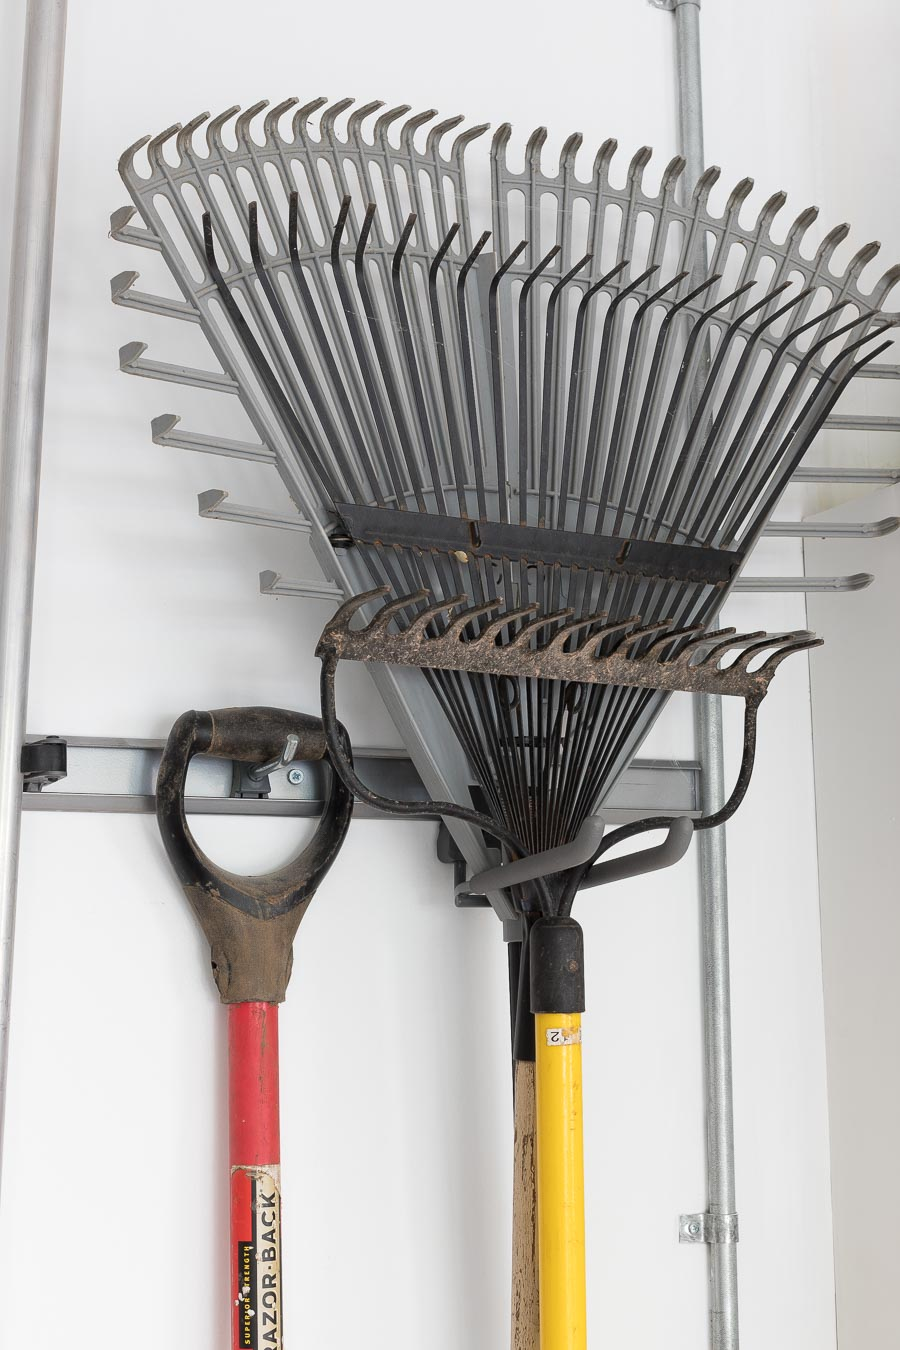 Elfa Hooks For Hanging Long Handled Tools In The Garage Love This Organization System